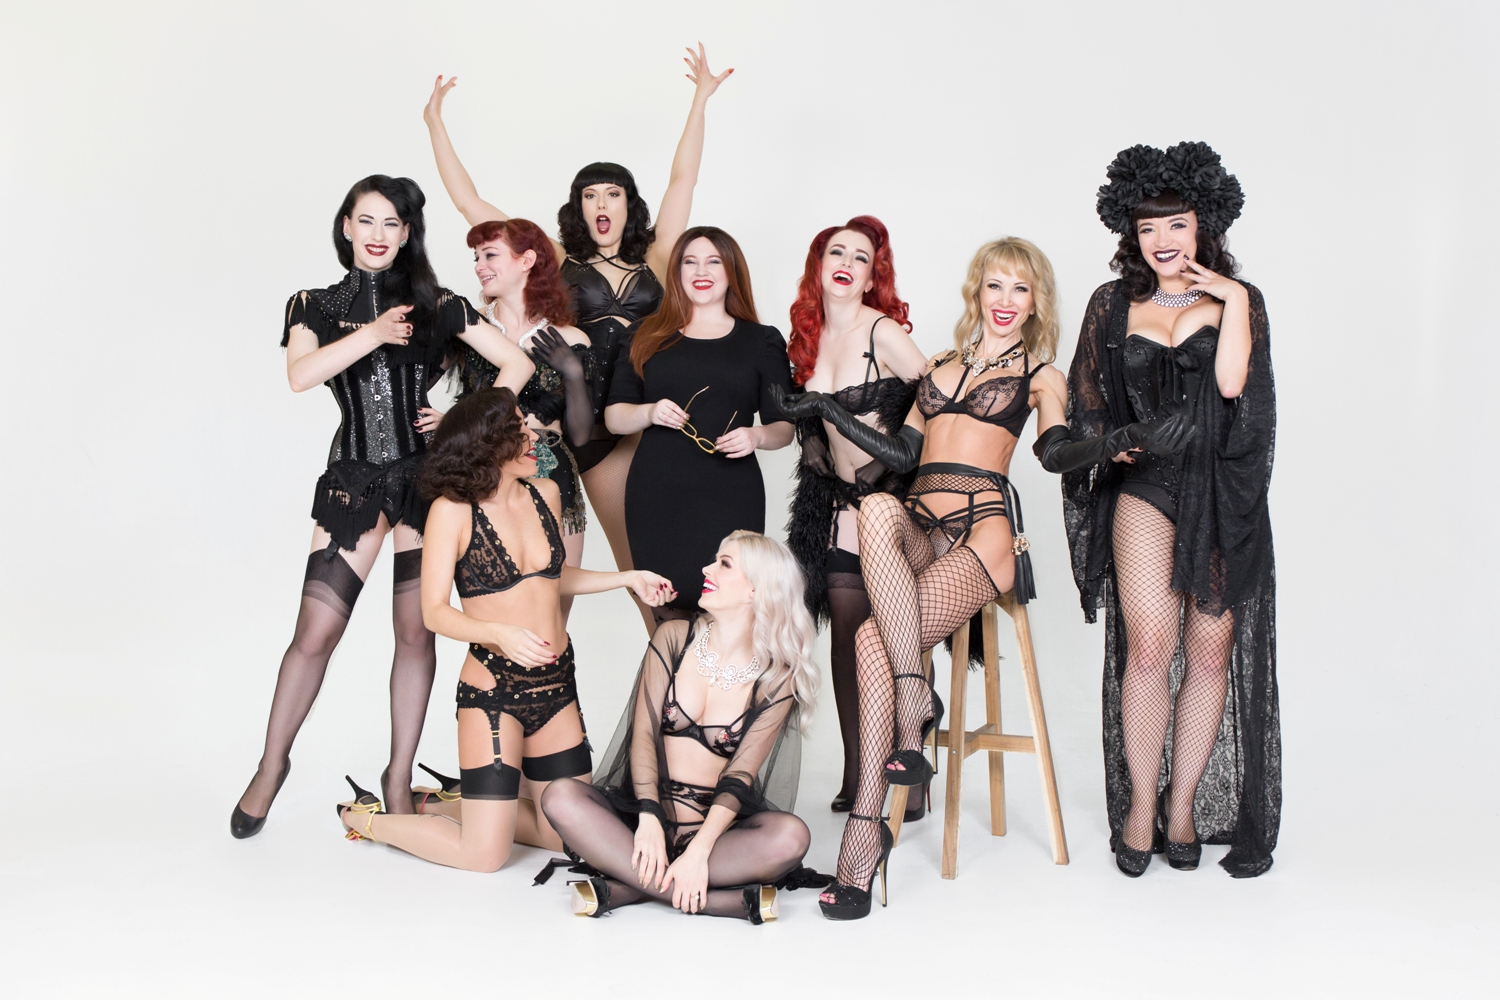 Editor-in-Chief of 21st Century Burlesque Magazine, Holli Mae Johnson (centre) with (clockwise from bottom centre) Beau Rocks, Kitty Bang Bang, Betsy Rose, Vicky Butterfly, Lady May, Polly Rae, Dinah Might and Bettsie Bon Bon. © Tigz Rice 2017.